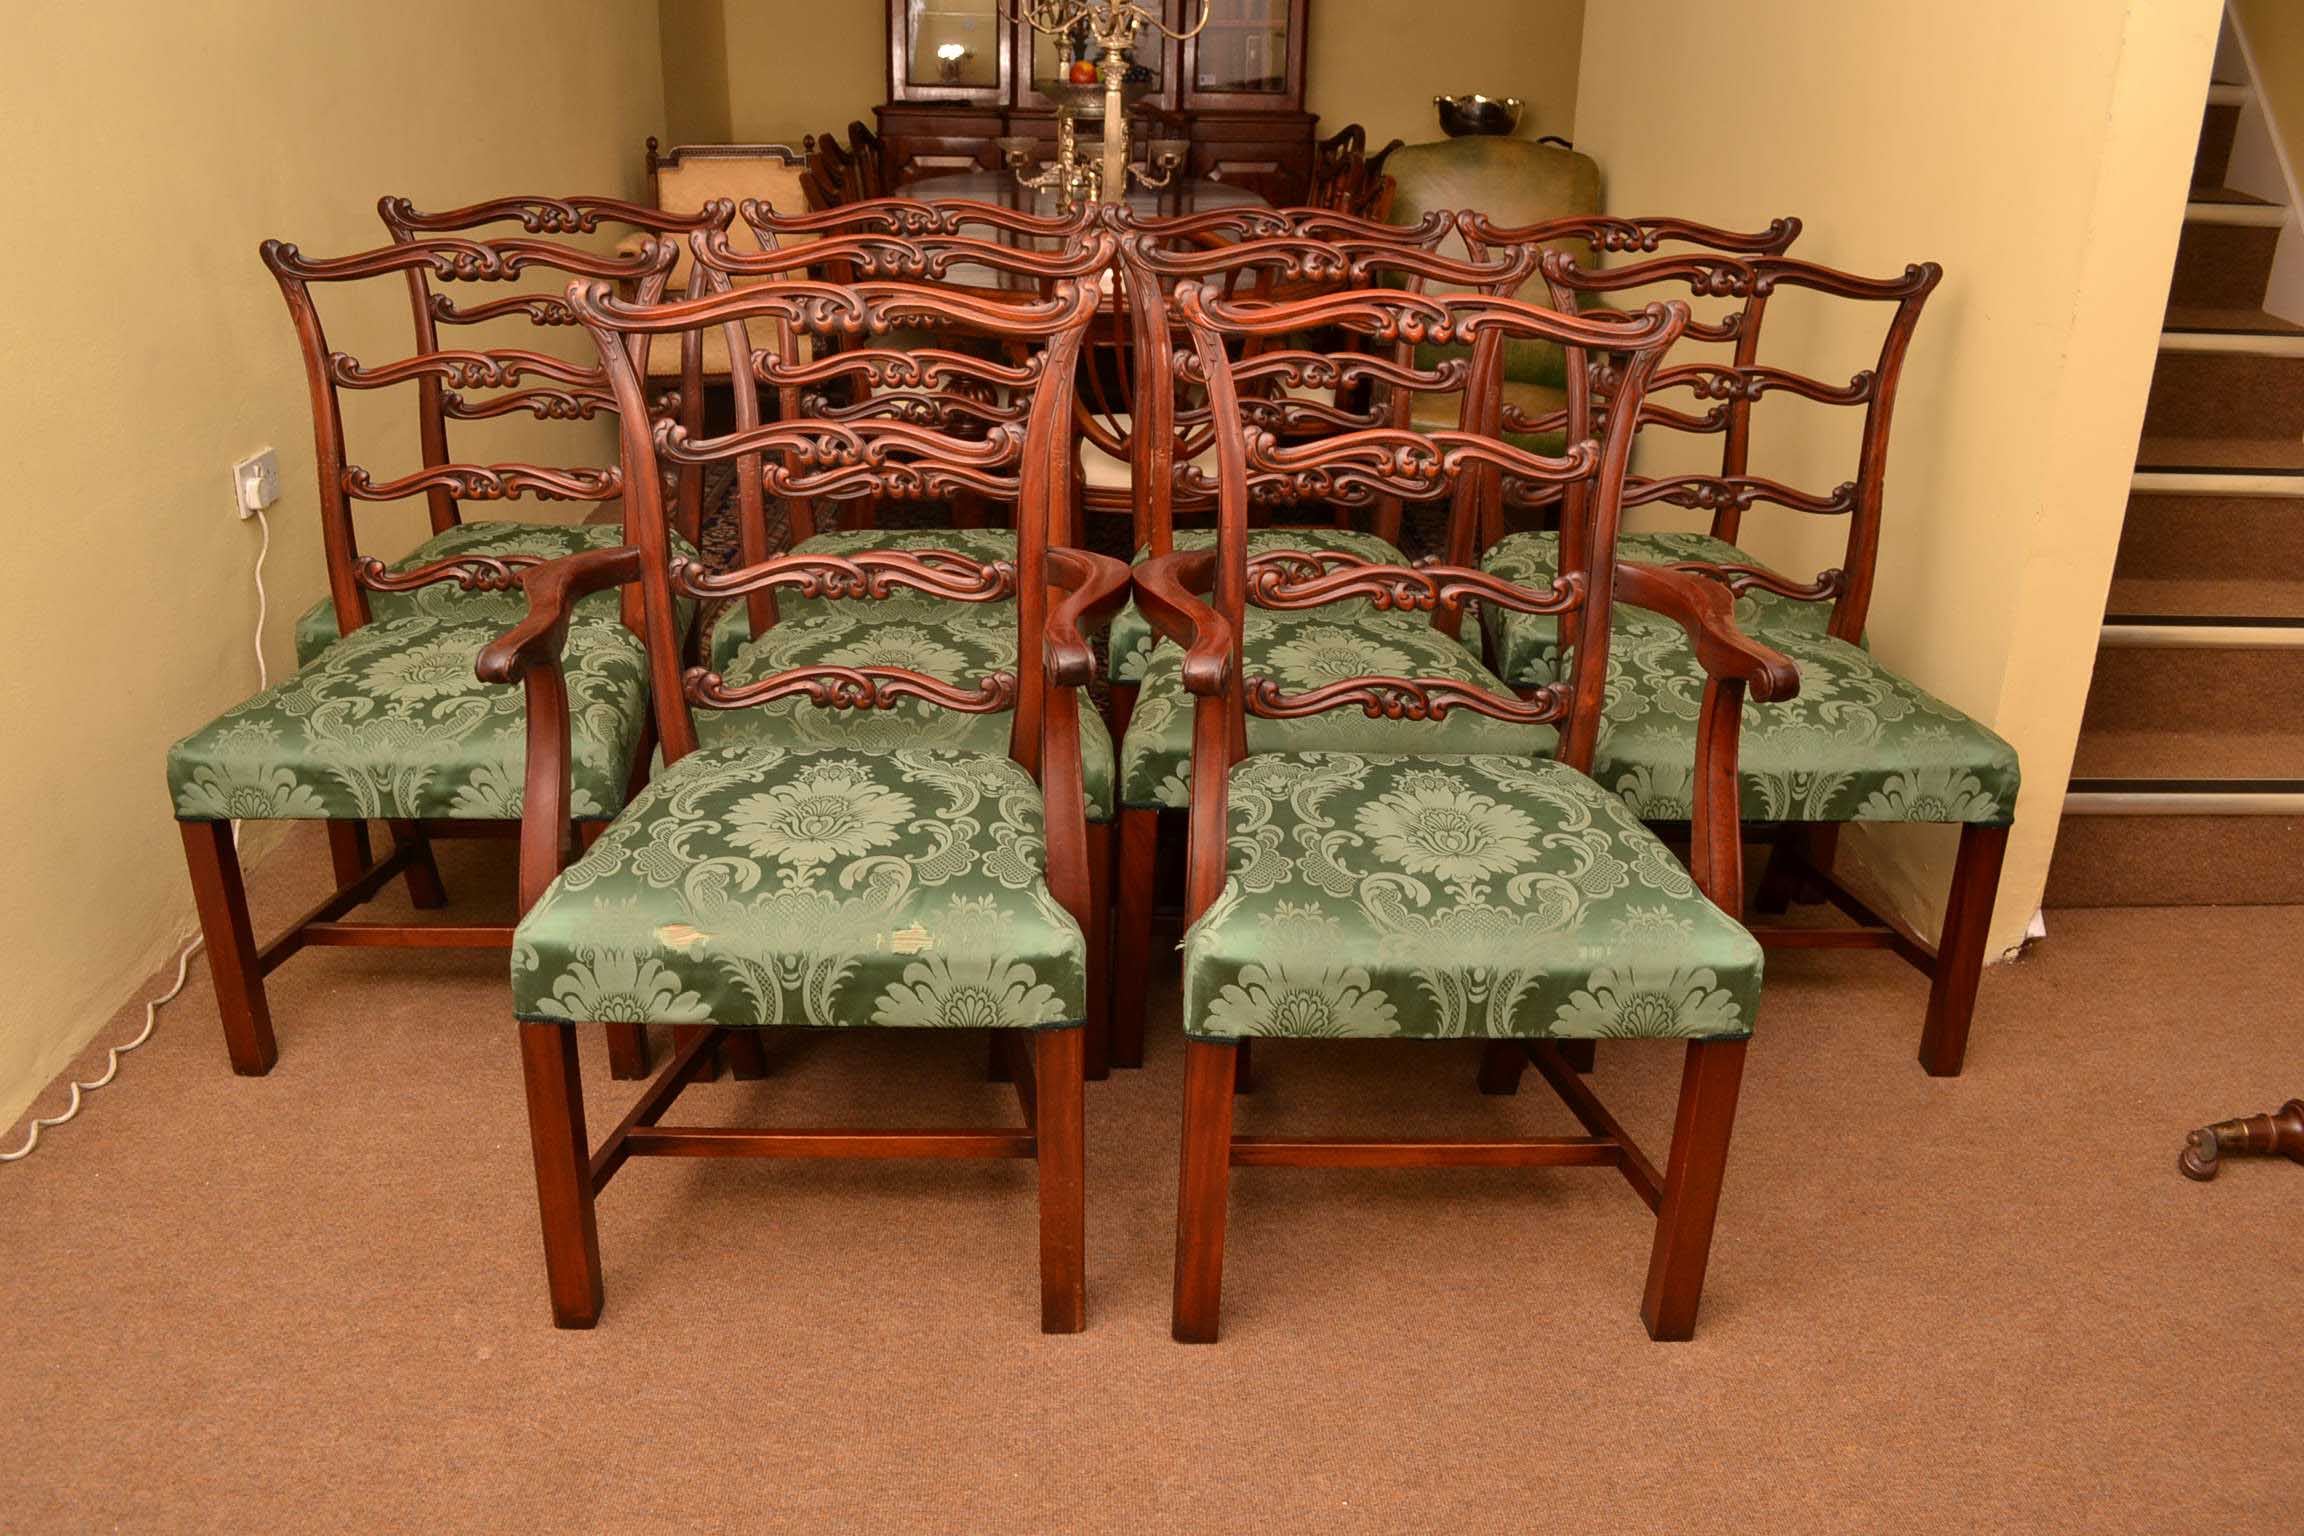 Chairs dining chairs 10 vintage chippendale ladderback dining